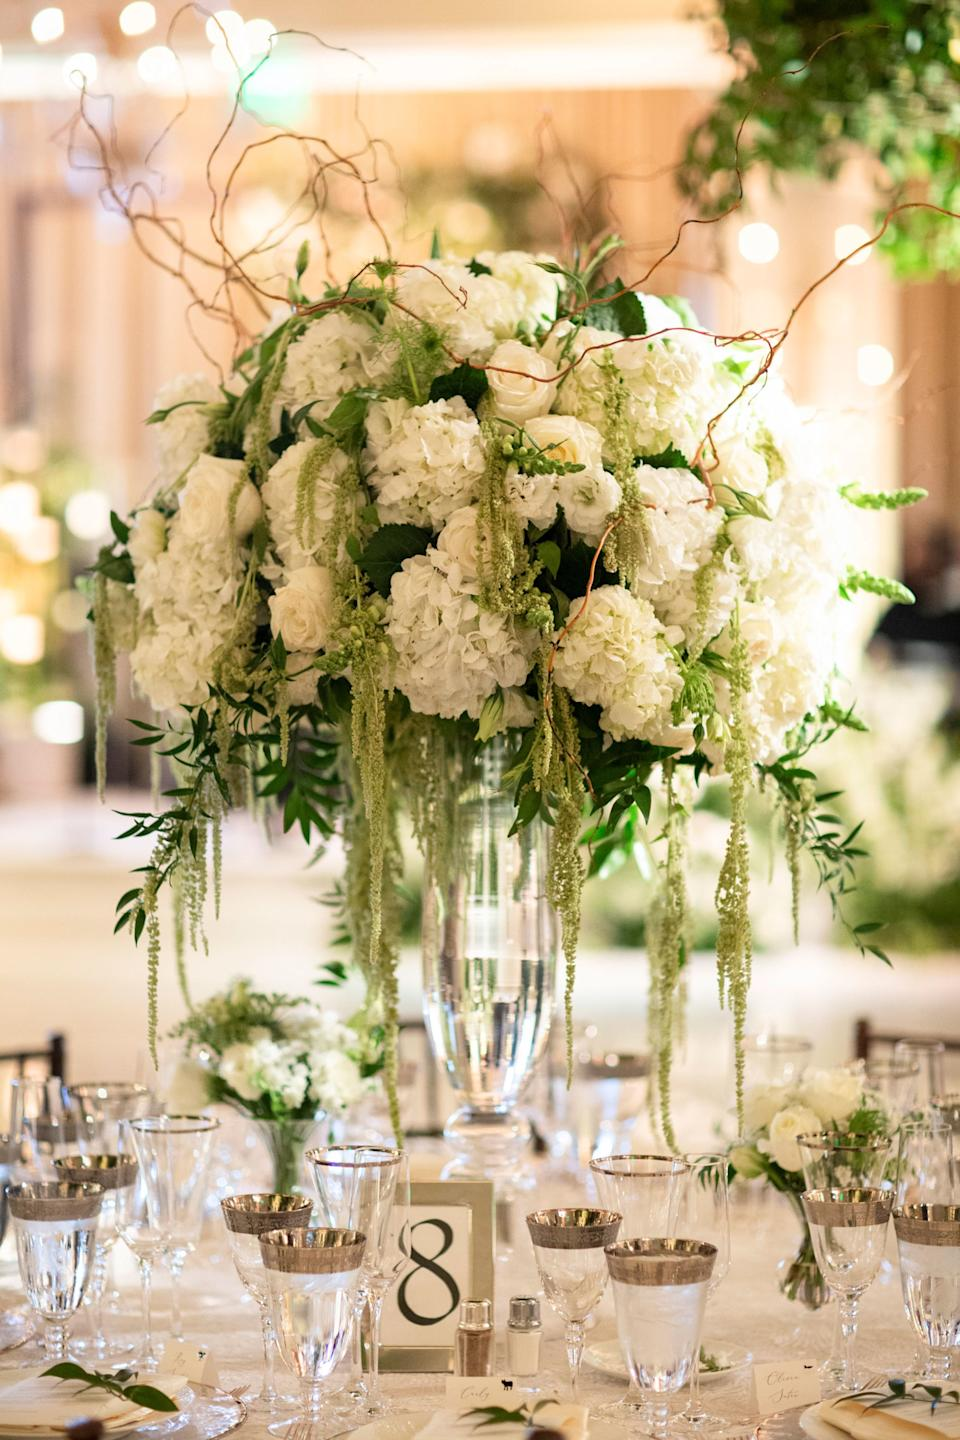 Trumpet vases with all white hydrangeas, lisianthus, roses, orchids, double blooming peonies, and more with amaranthus trailing down.